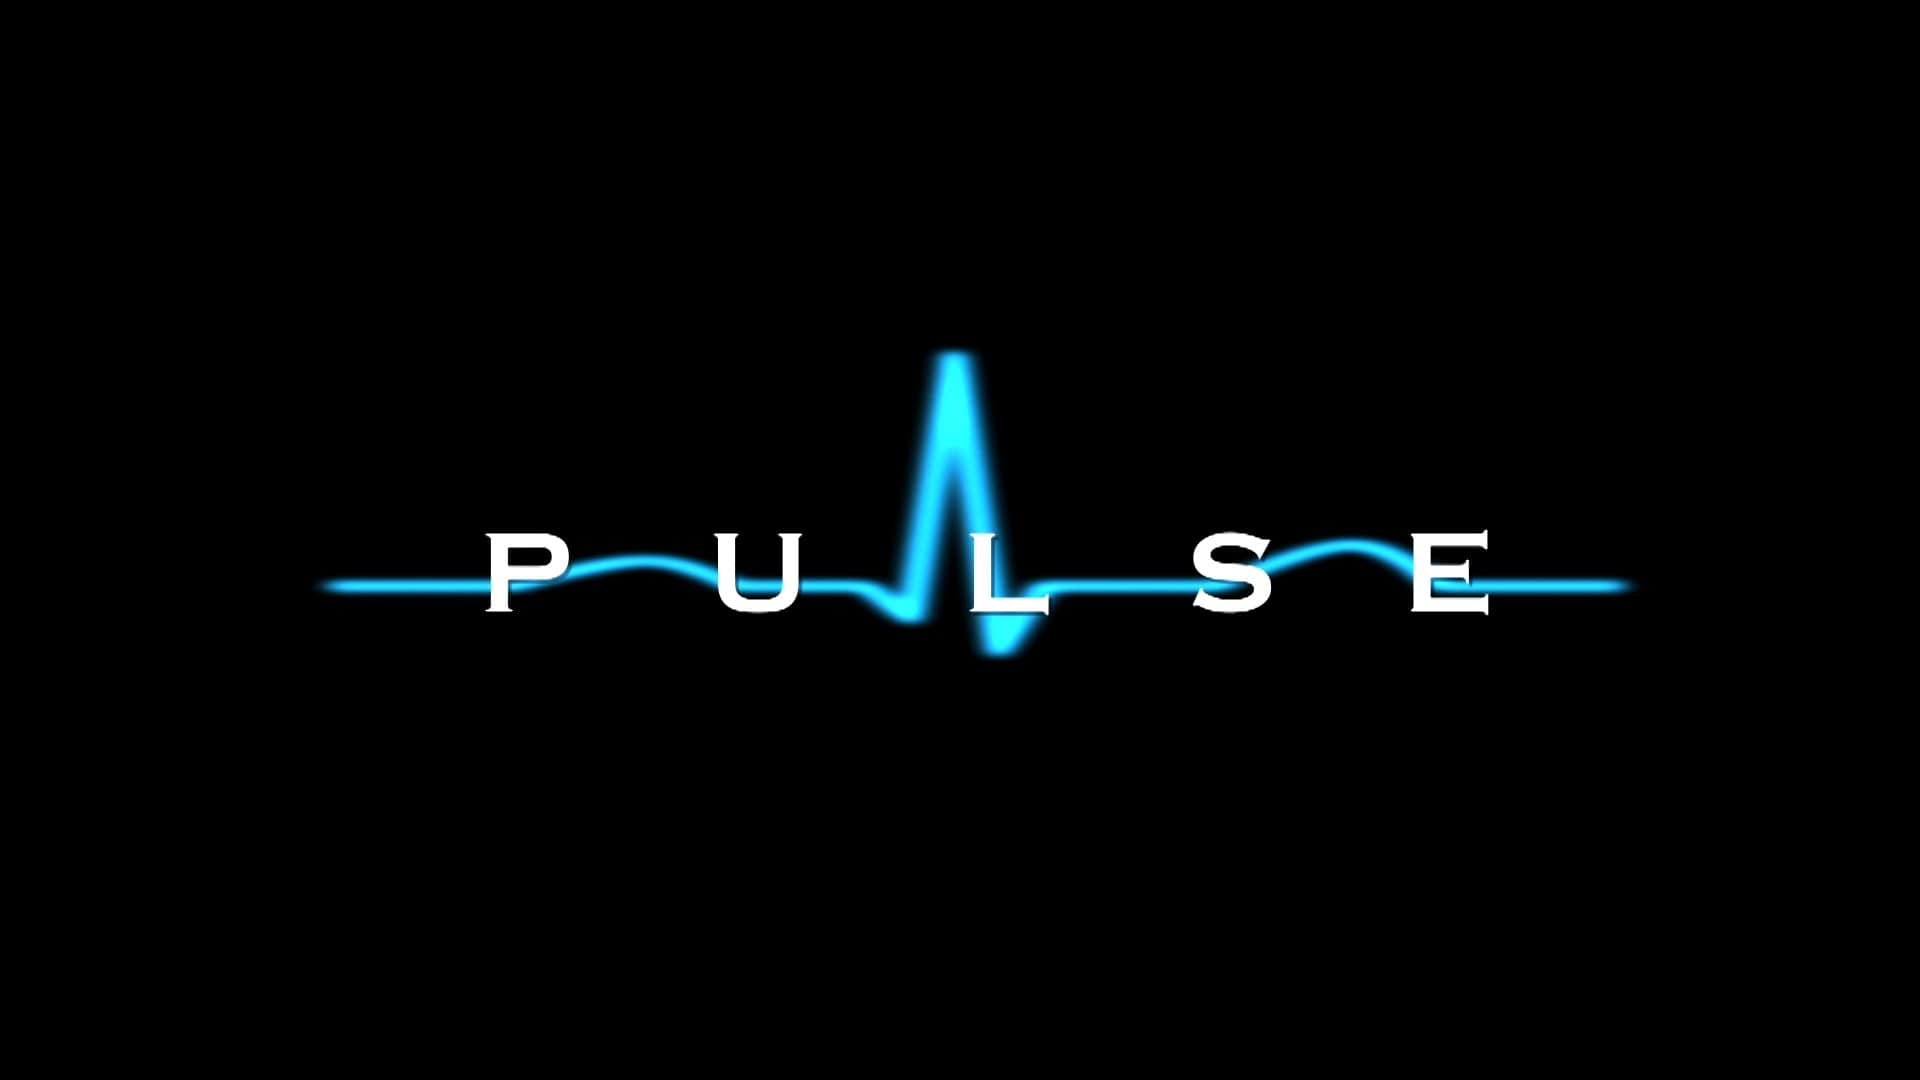 Review of the Pulse Krypton Build - Kodi 17